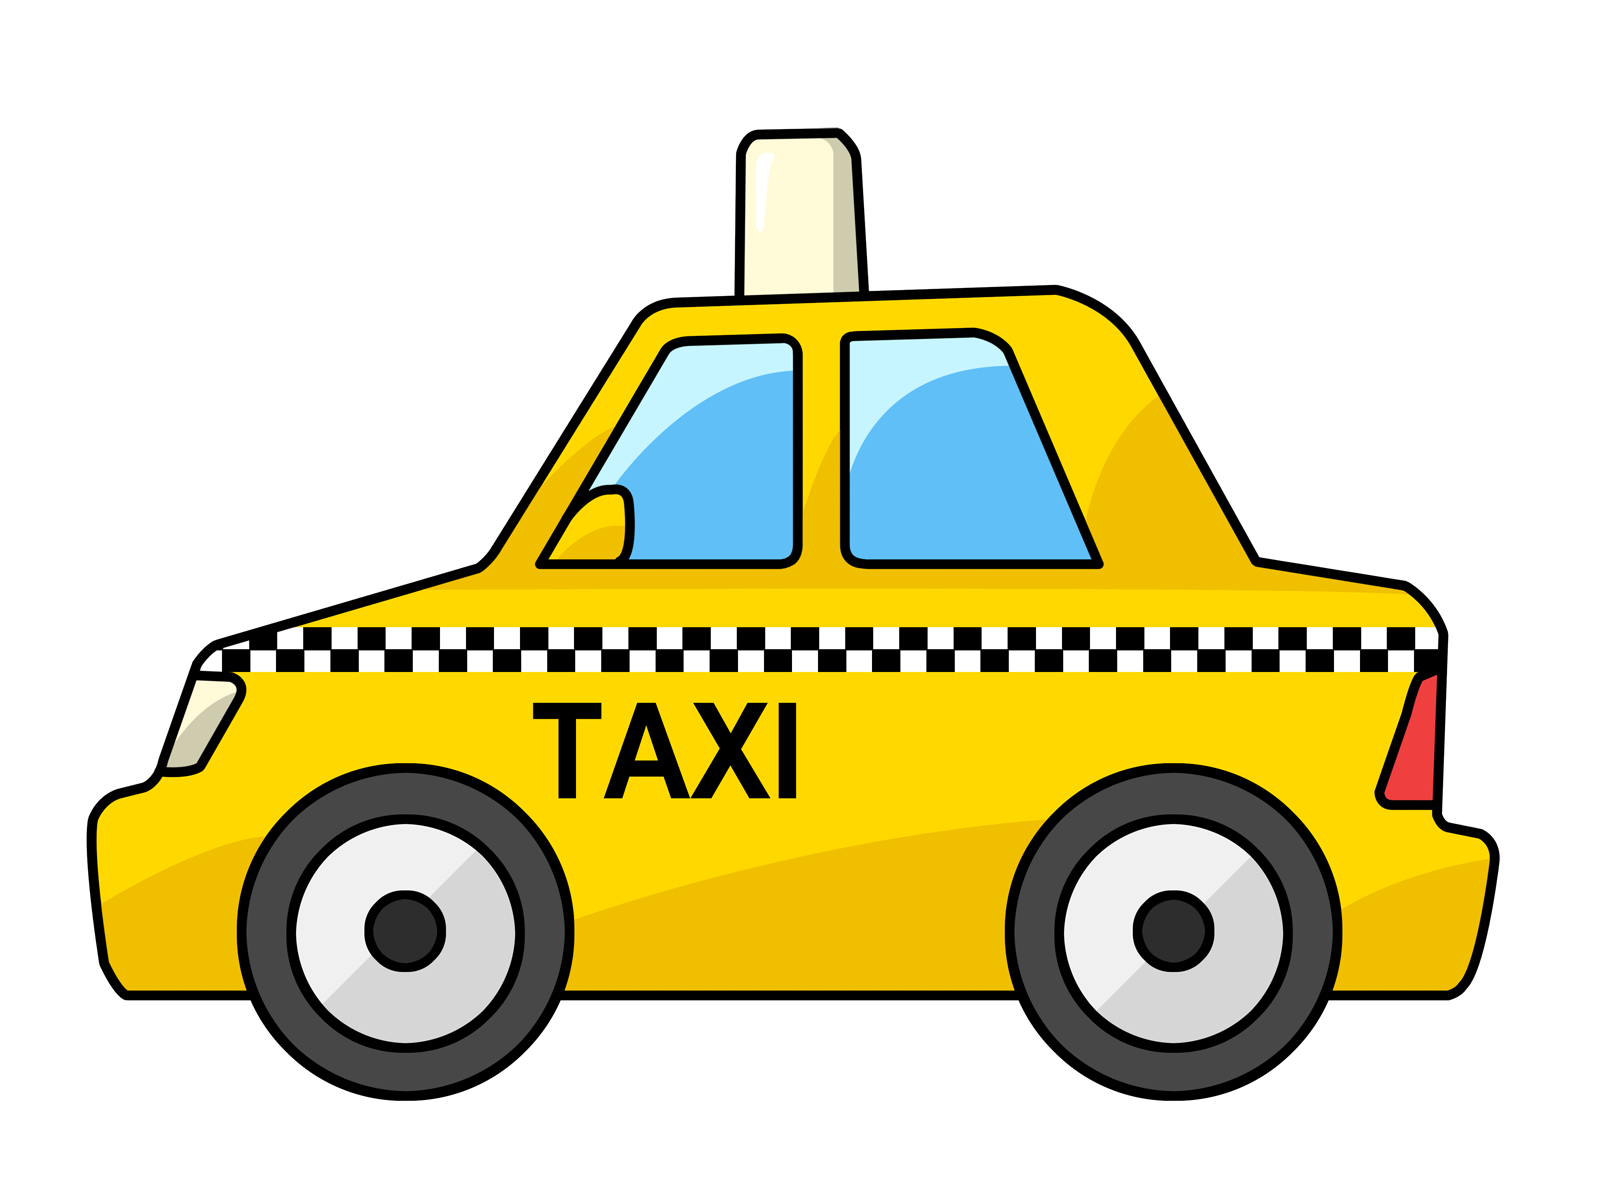 Taxi car clipart clipart royalty free library Pin by Rentlx on Cars | Pinterest | Rental listings and Portal clipart royalty free library